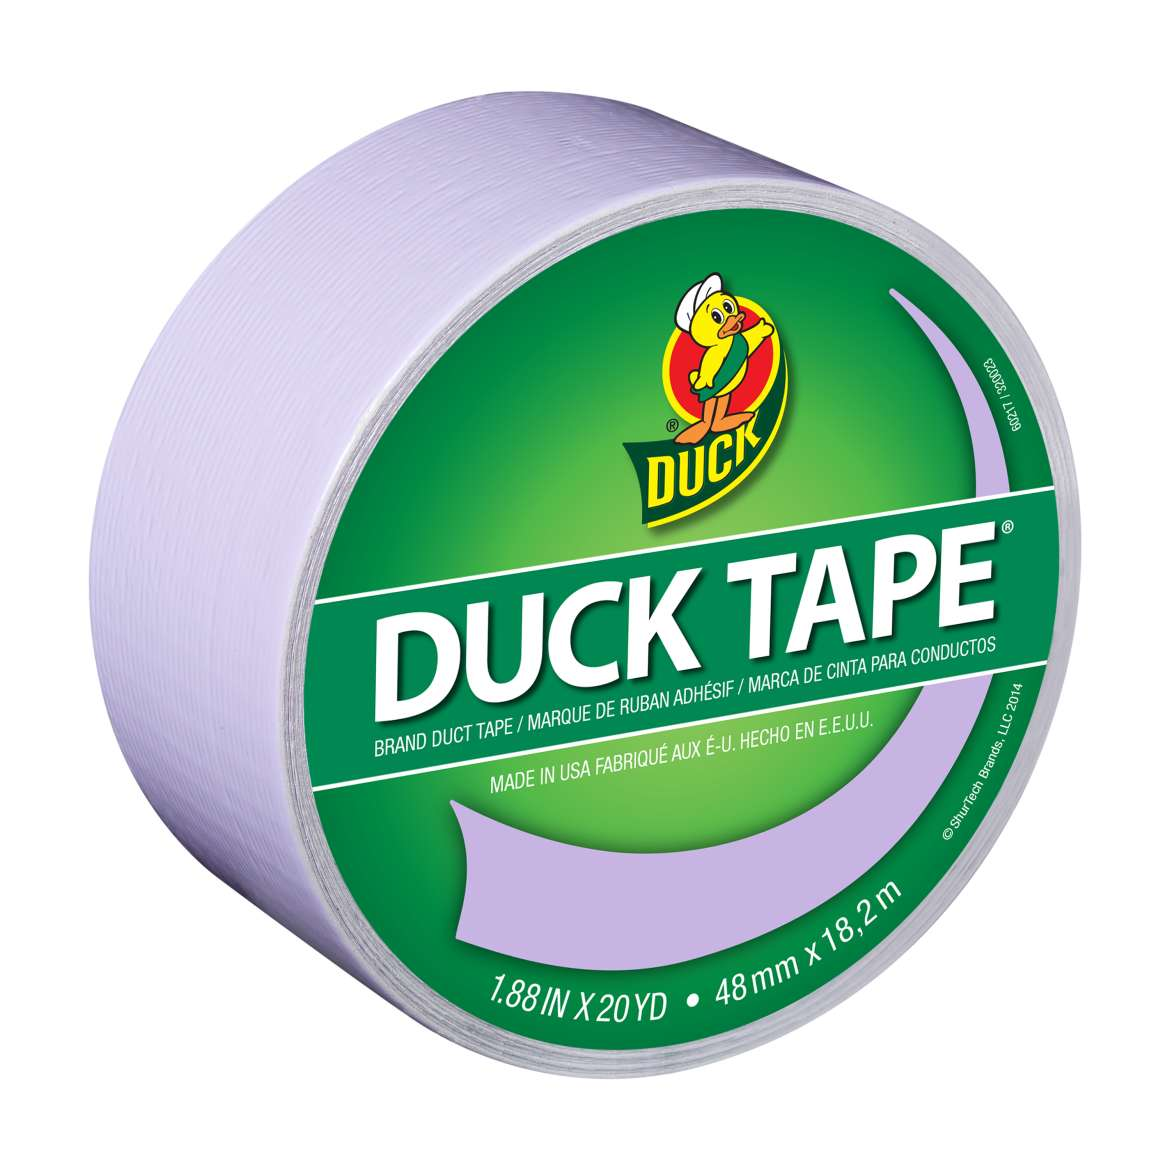 Color Duck Tape® Brand Duct Tape - Lilac, 1.88 in. x 20 yd. Image